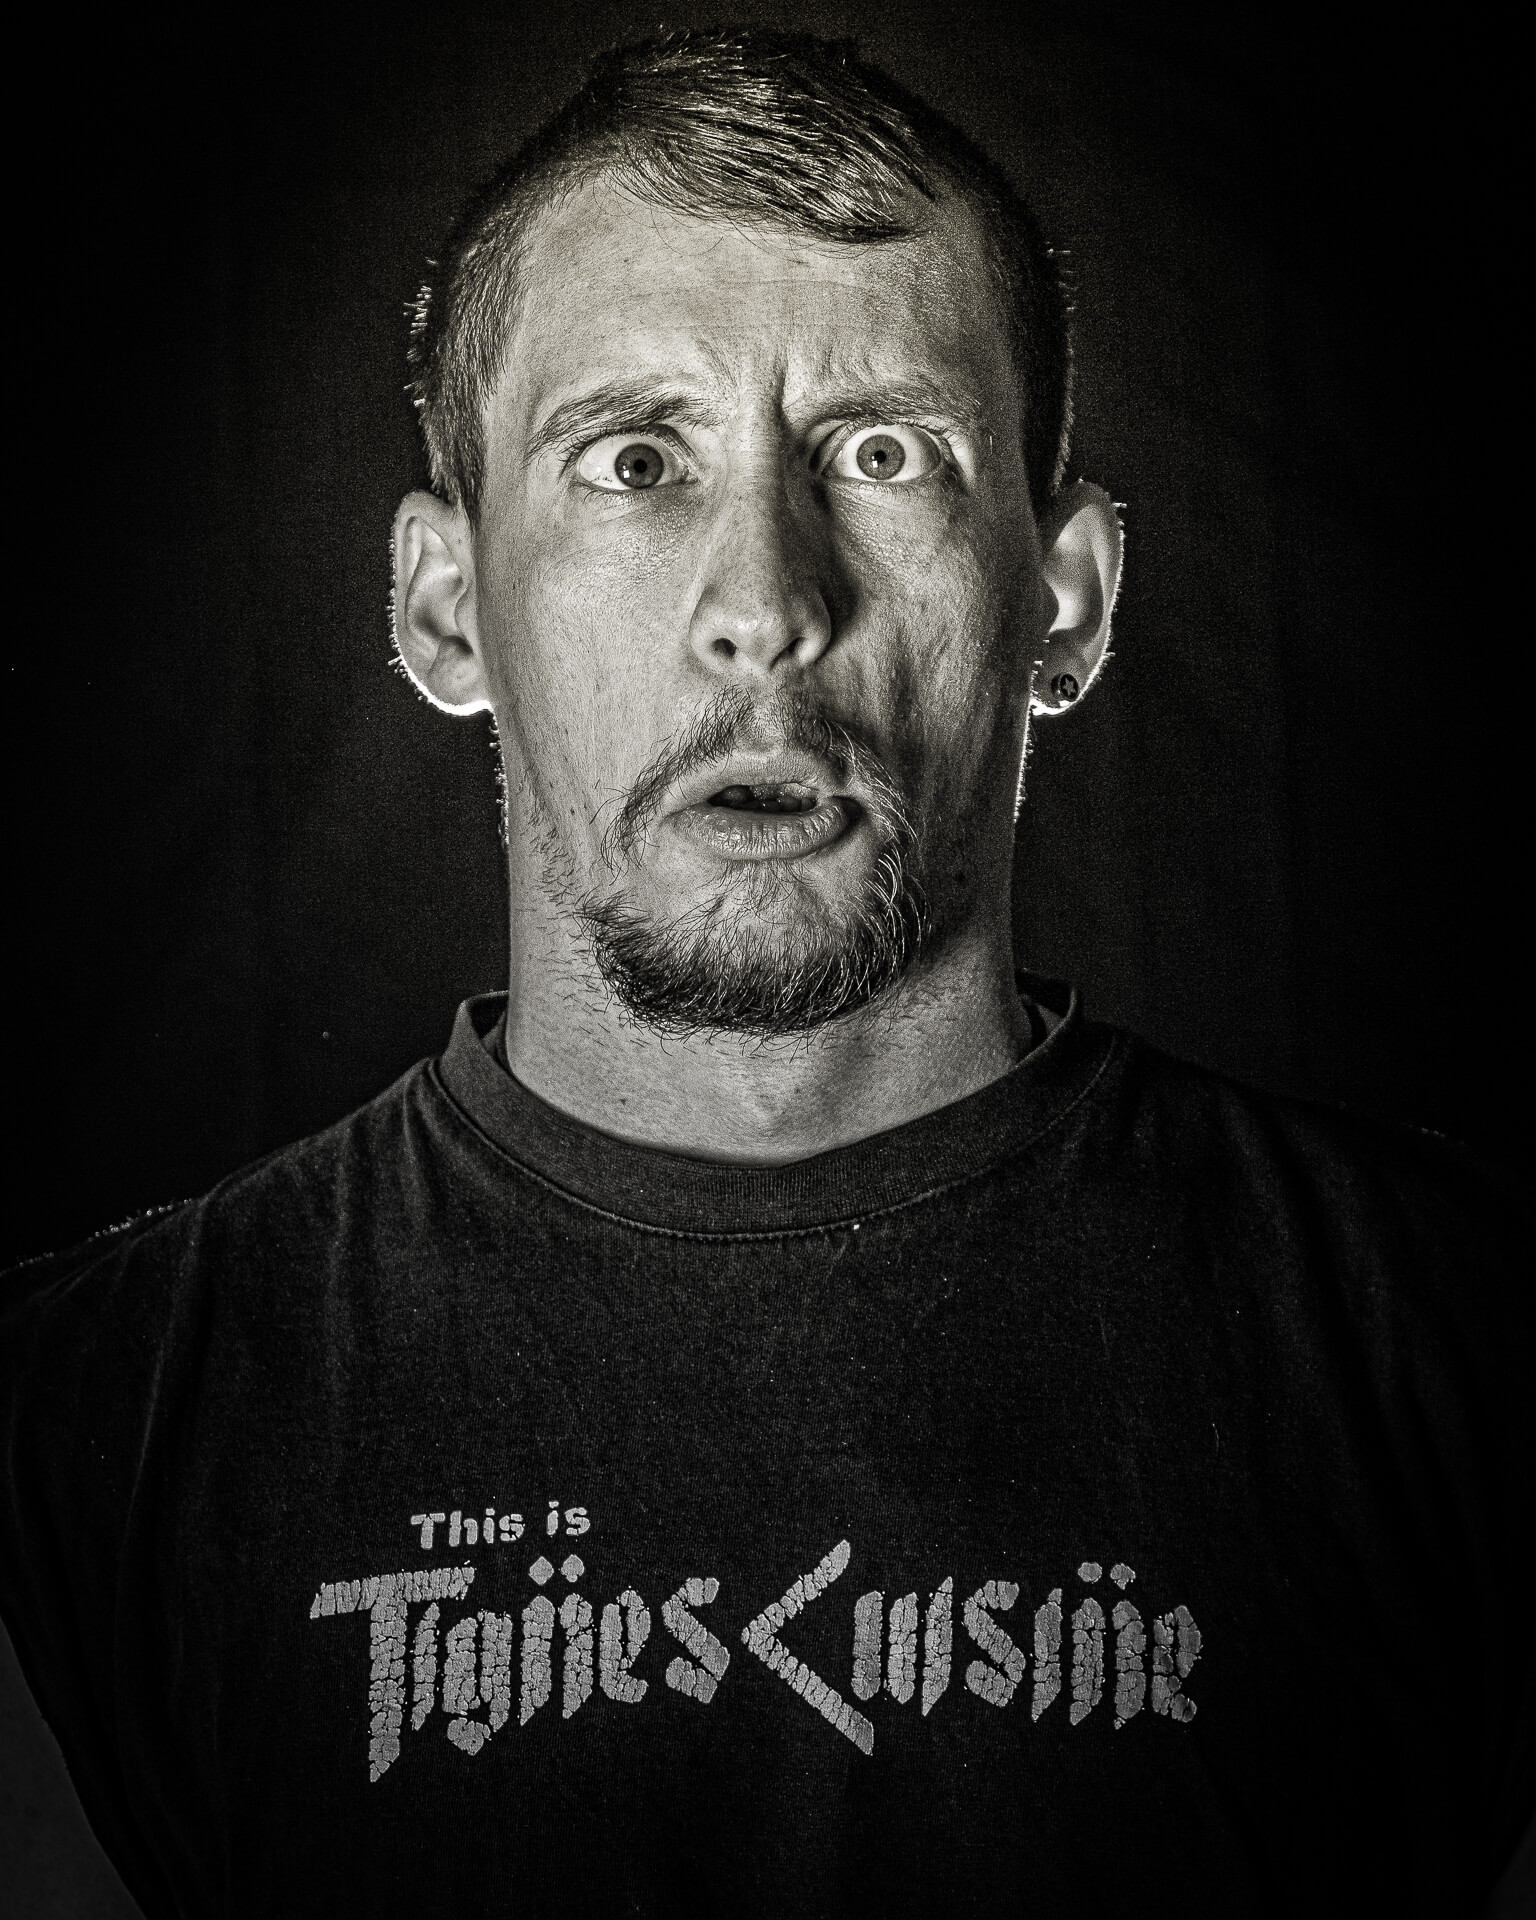 Joel, seen here in a Black & White chest up image pulls a face for the camera. A slightly bearded individual, his mouth is slightly open, whilst his left eye is wide open and looks ahead, his right looks inward.